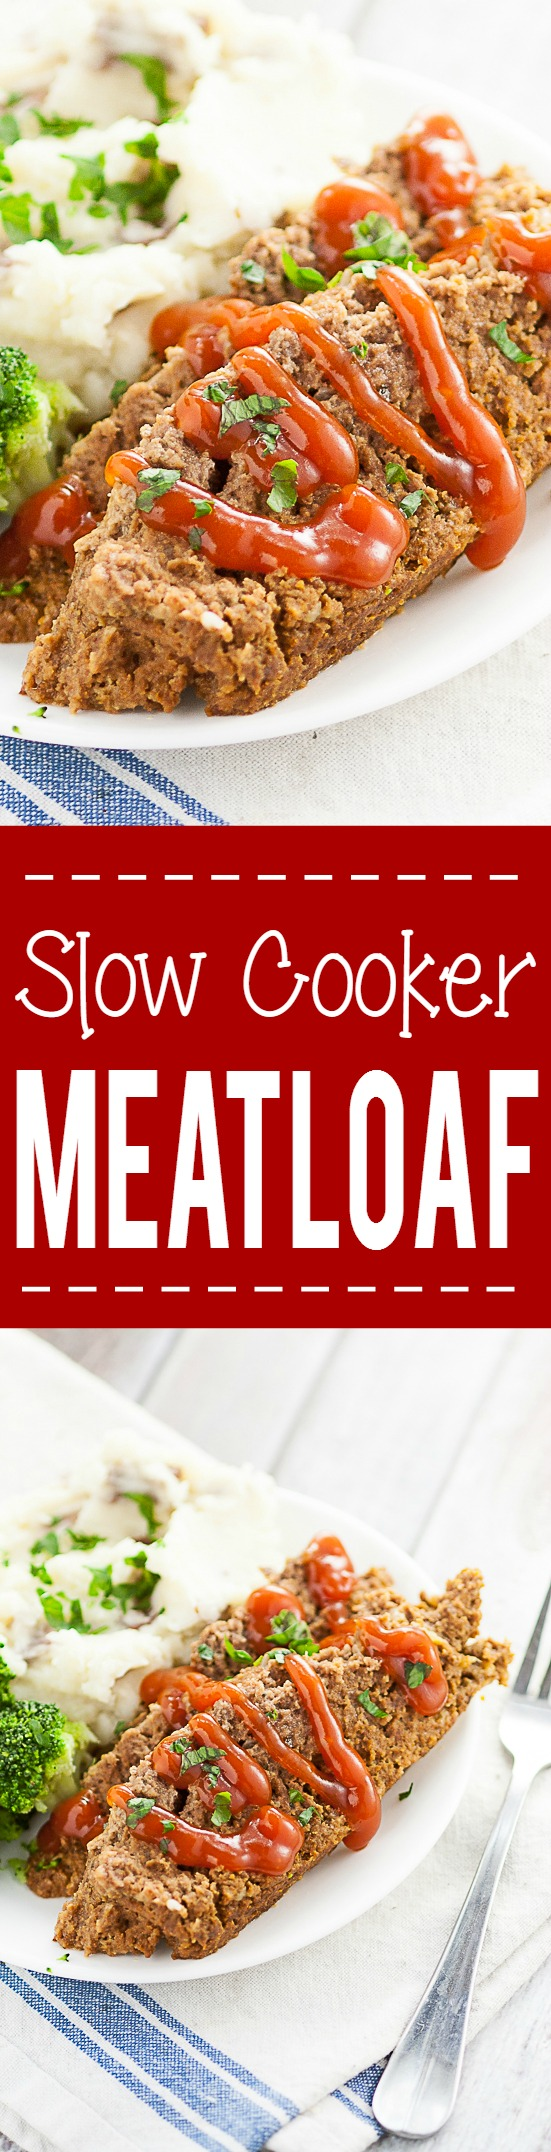 Slow Cooker Meatloaf Recipe - A simple and delicious easy Slow Cooker Meatloaf recipe using a juicy, classic meatloaf recipe and cooked in the Crock Pot.  Super delicious and easy Crockpot family dinner recipe.